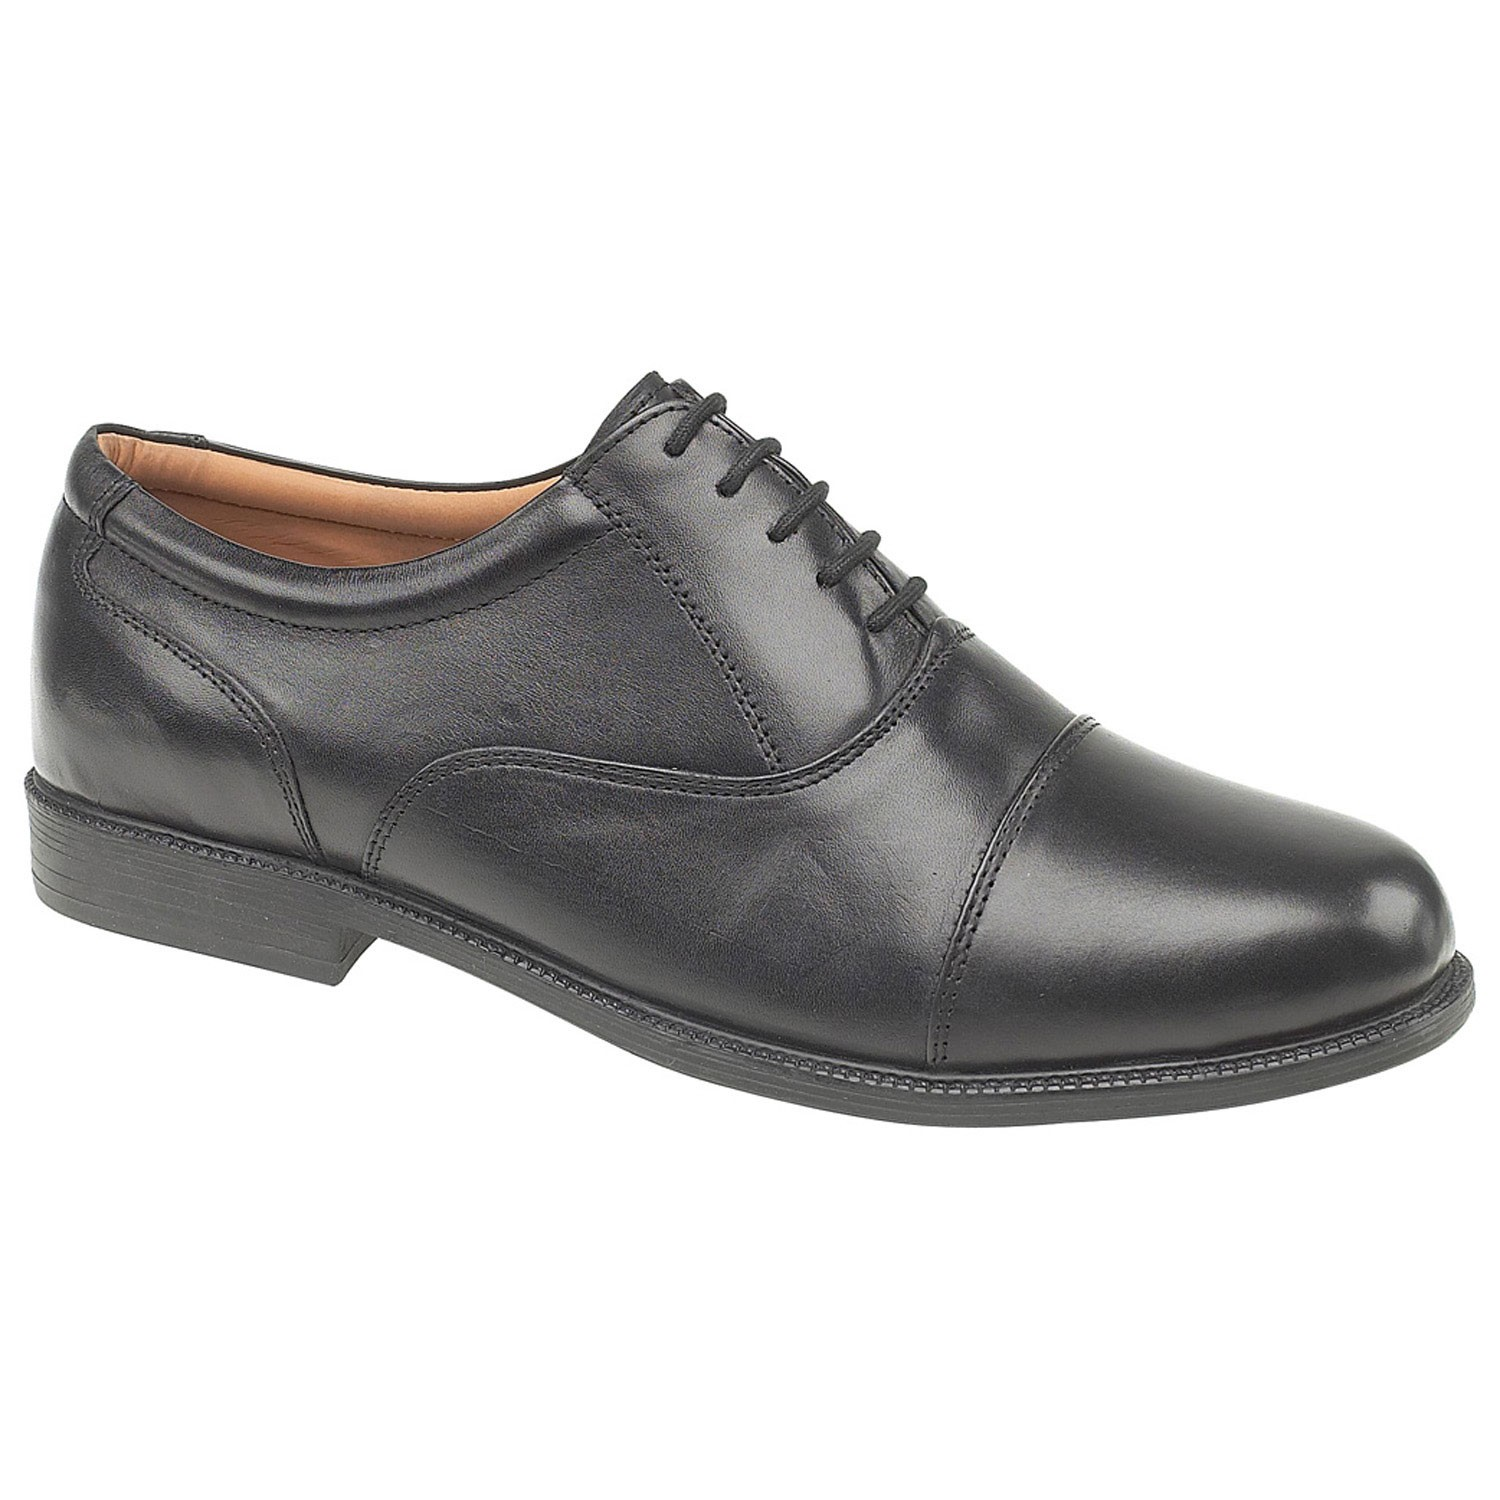 amblers leather boys school shoes 7399